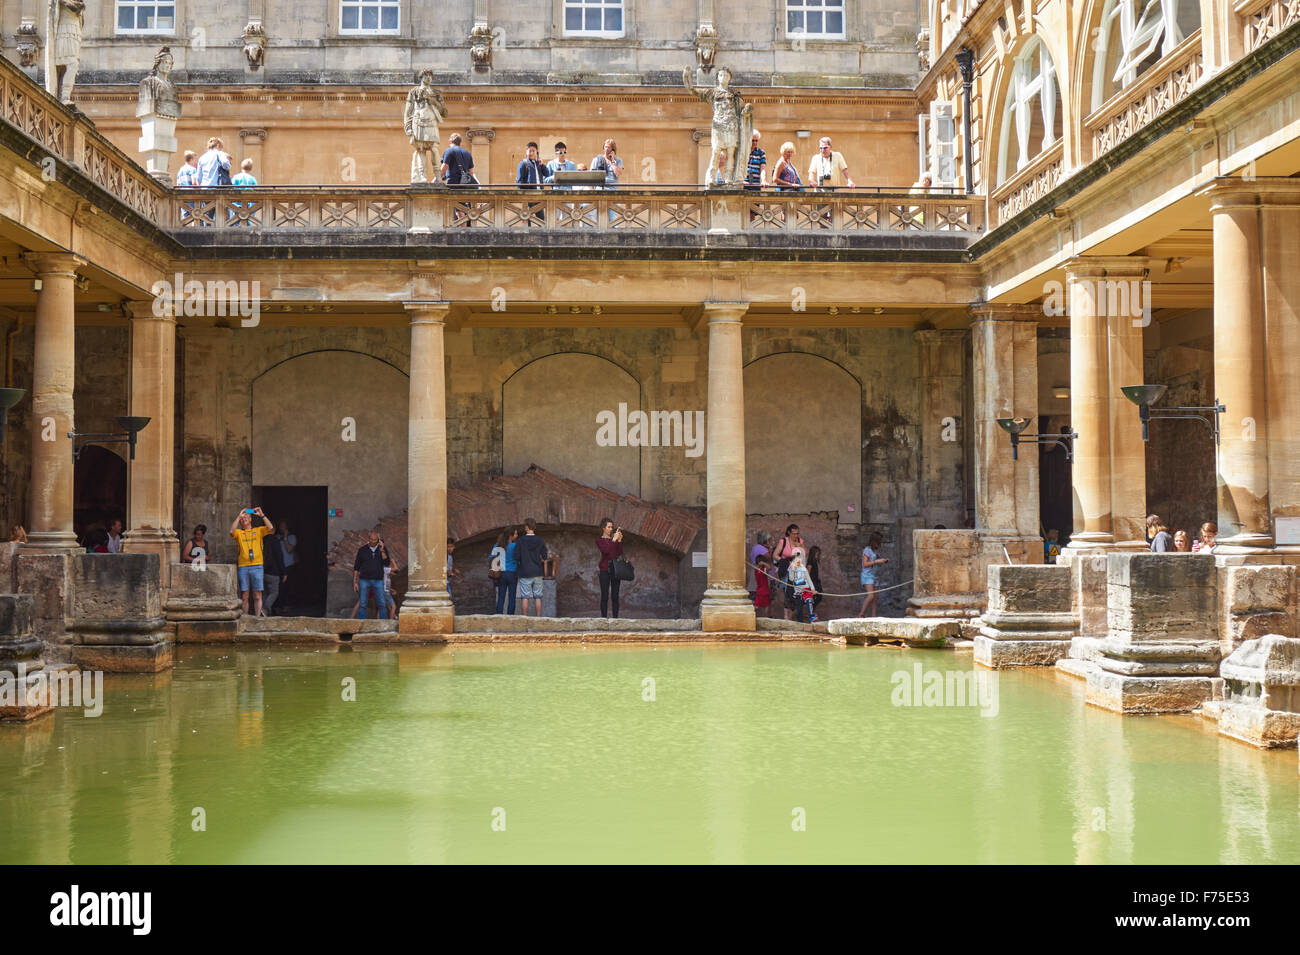 Roman Baths Bath Uk Stock Photos & Roman Baths Bath Uk Stock Images ...